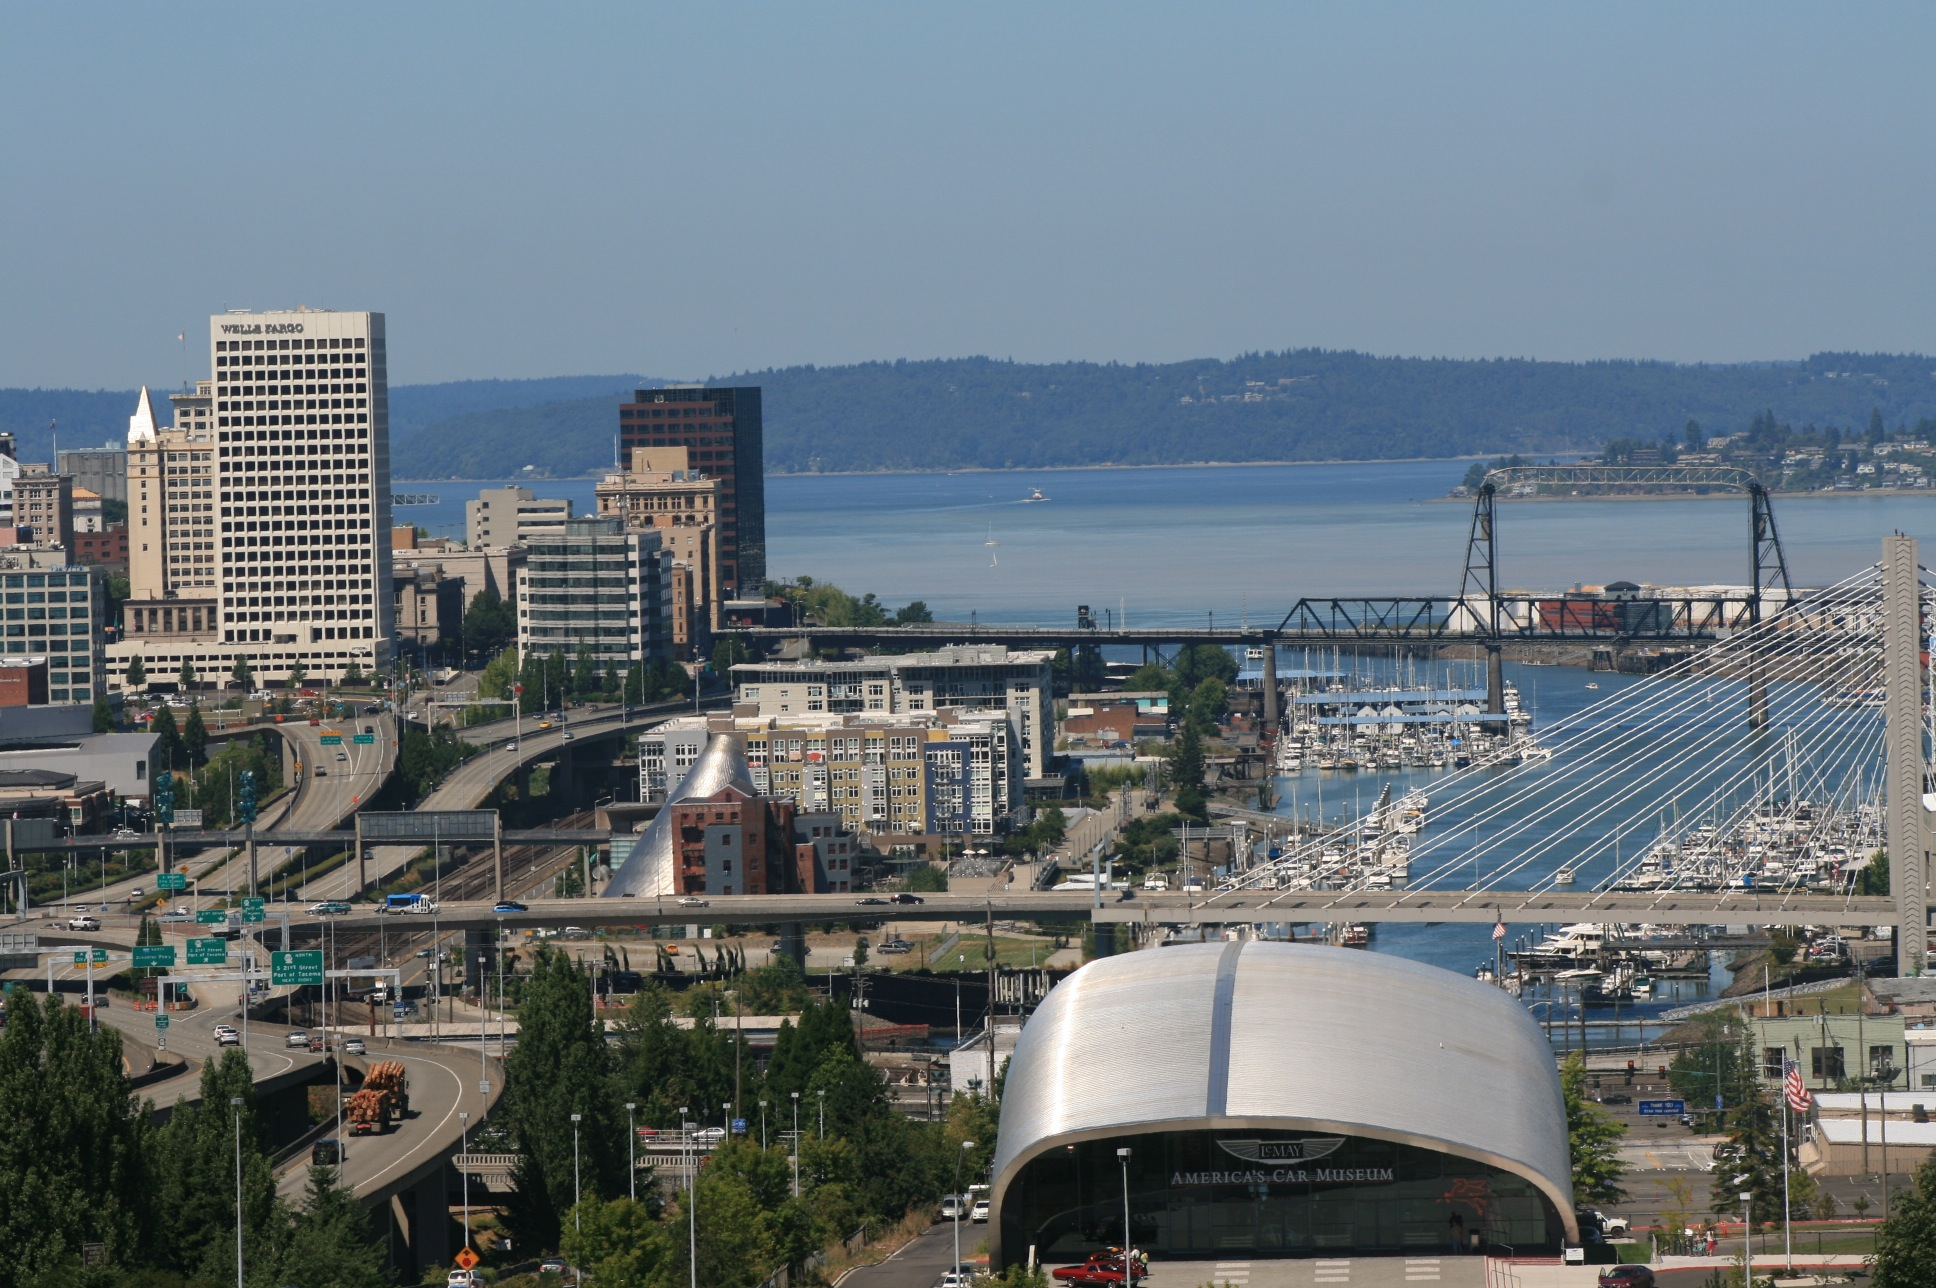 Tacoma Downtown Photos - SouthSoundTalk